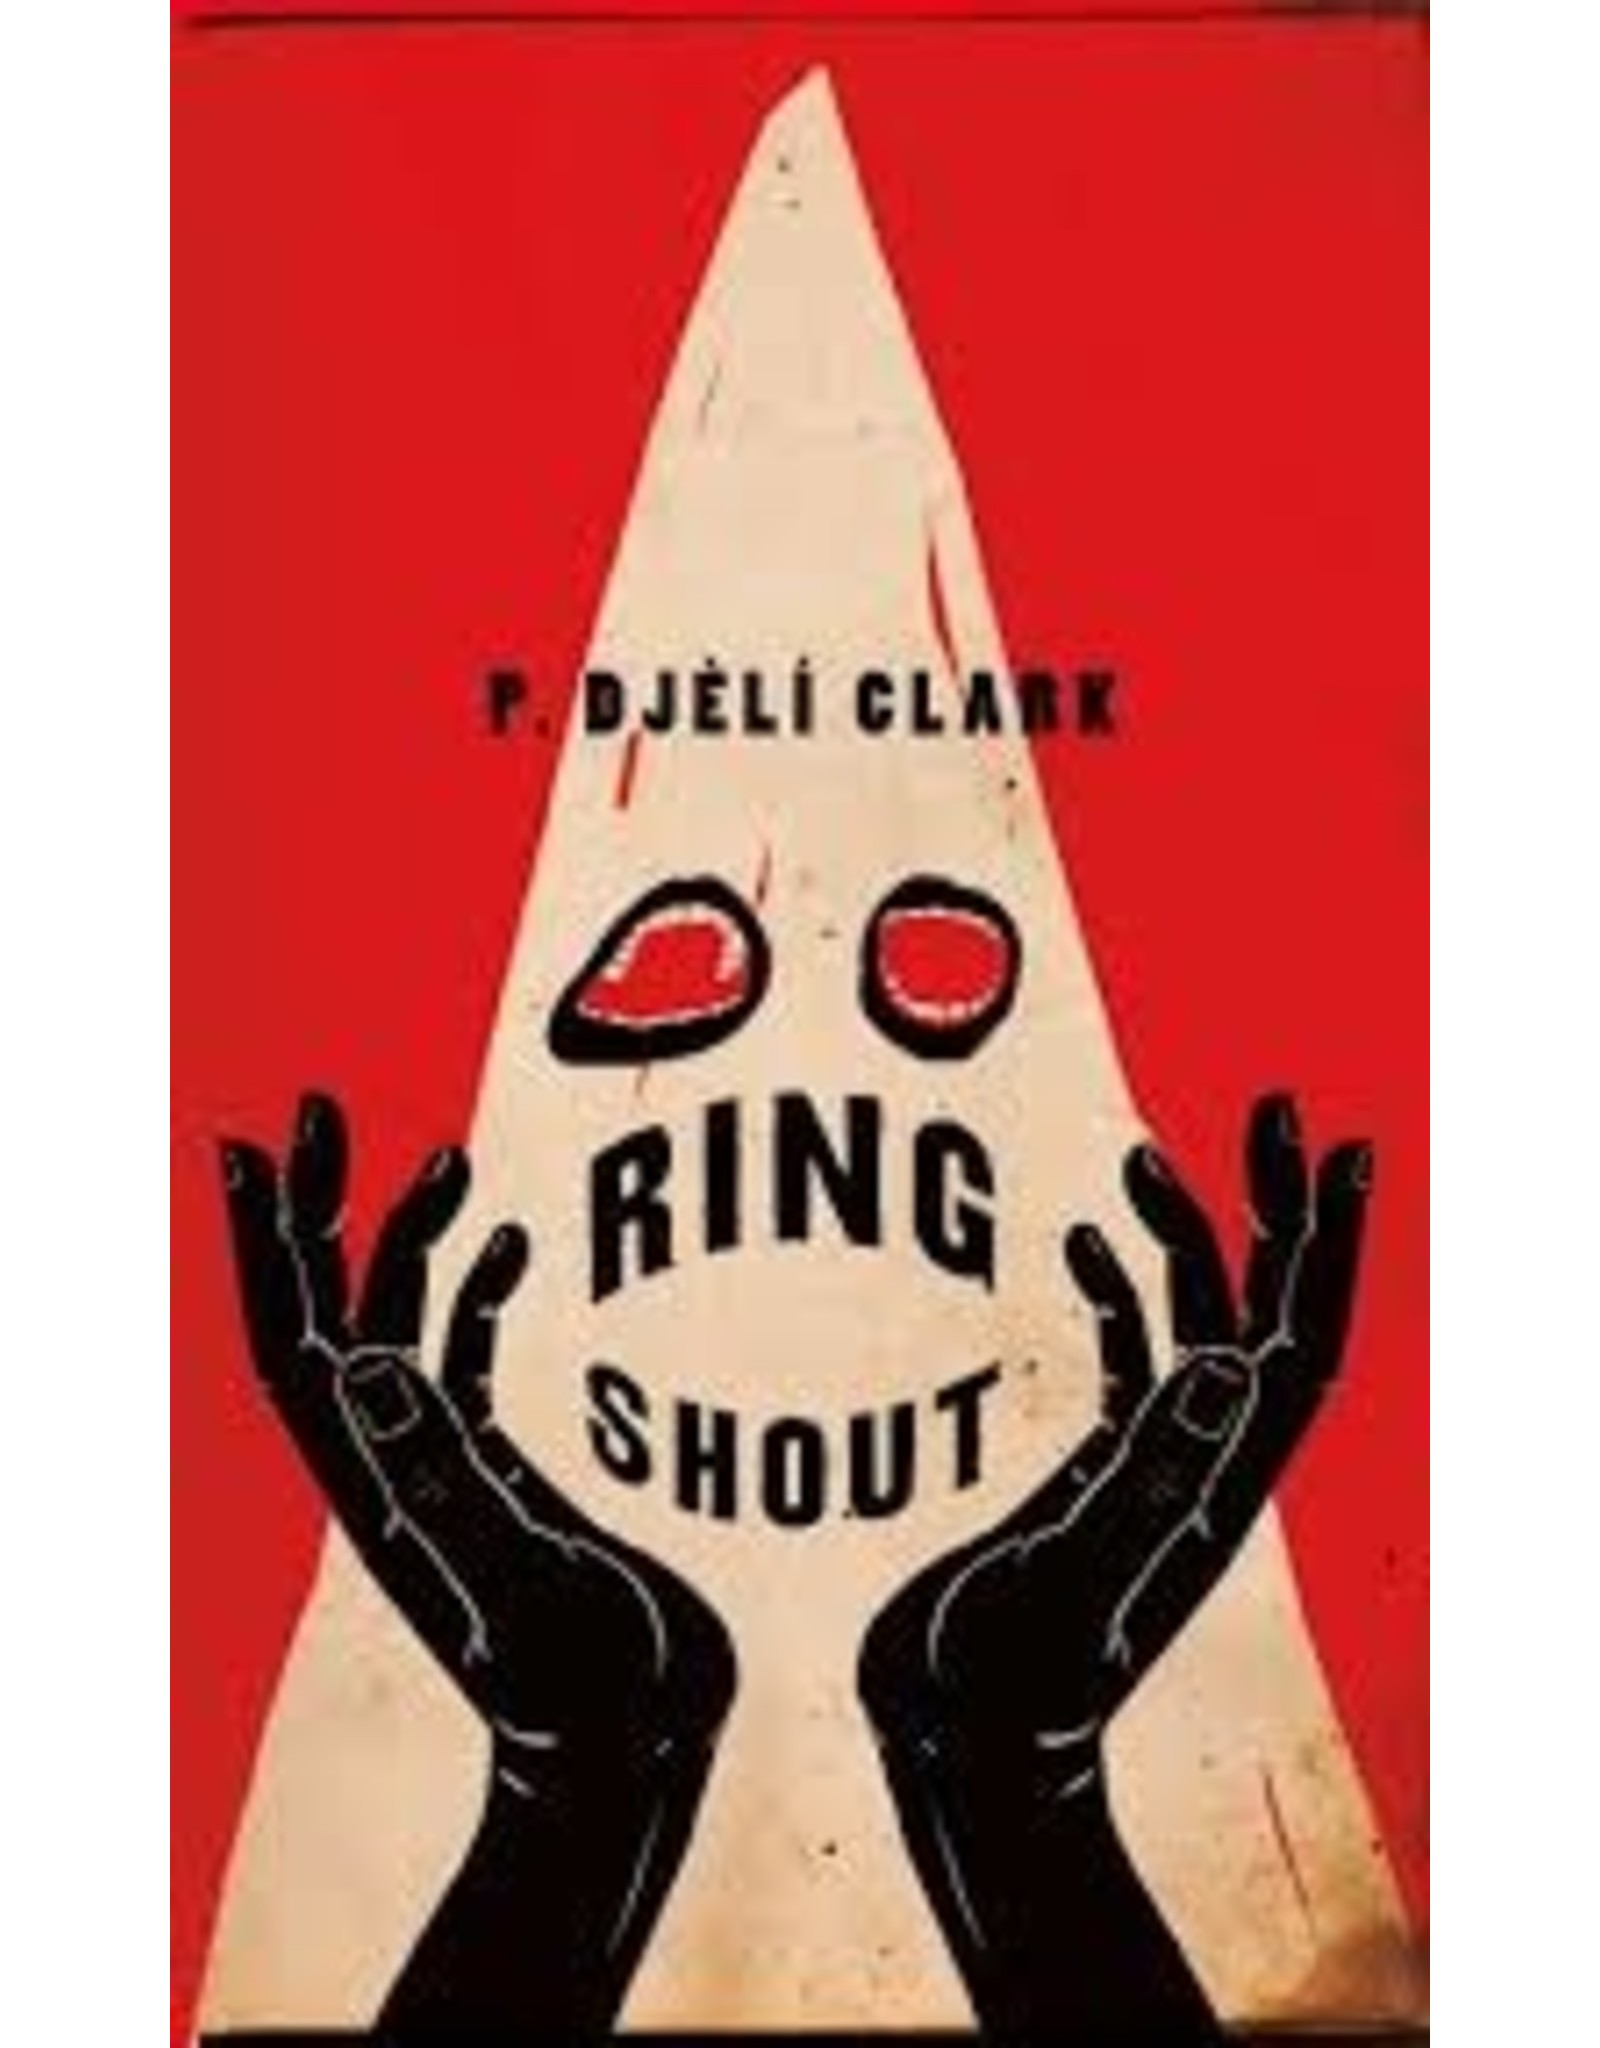 Books Ring Shout by P. Djeli Clark  (Holiday Catalog)